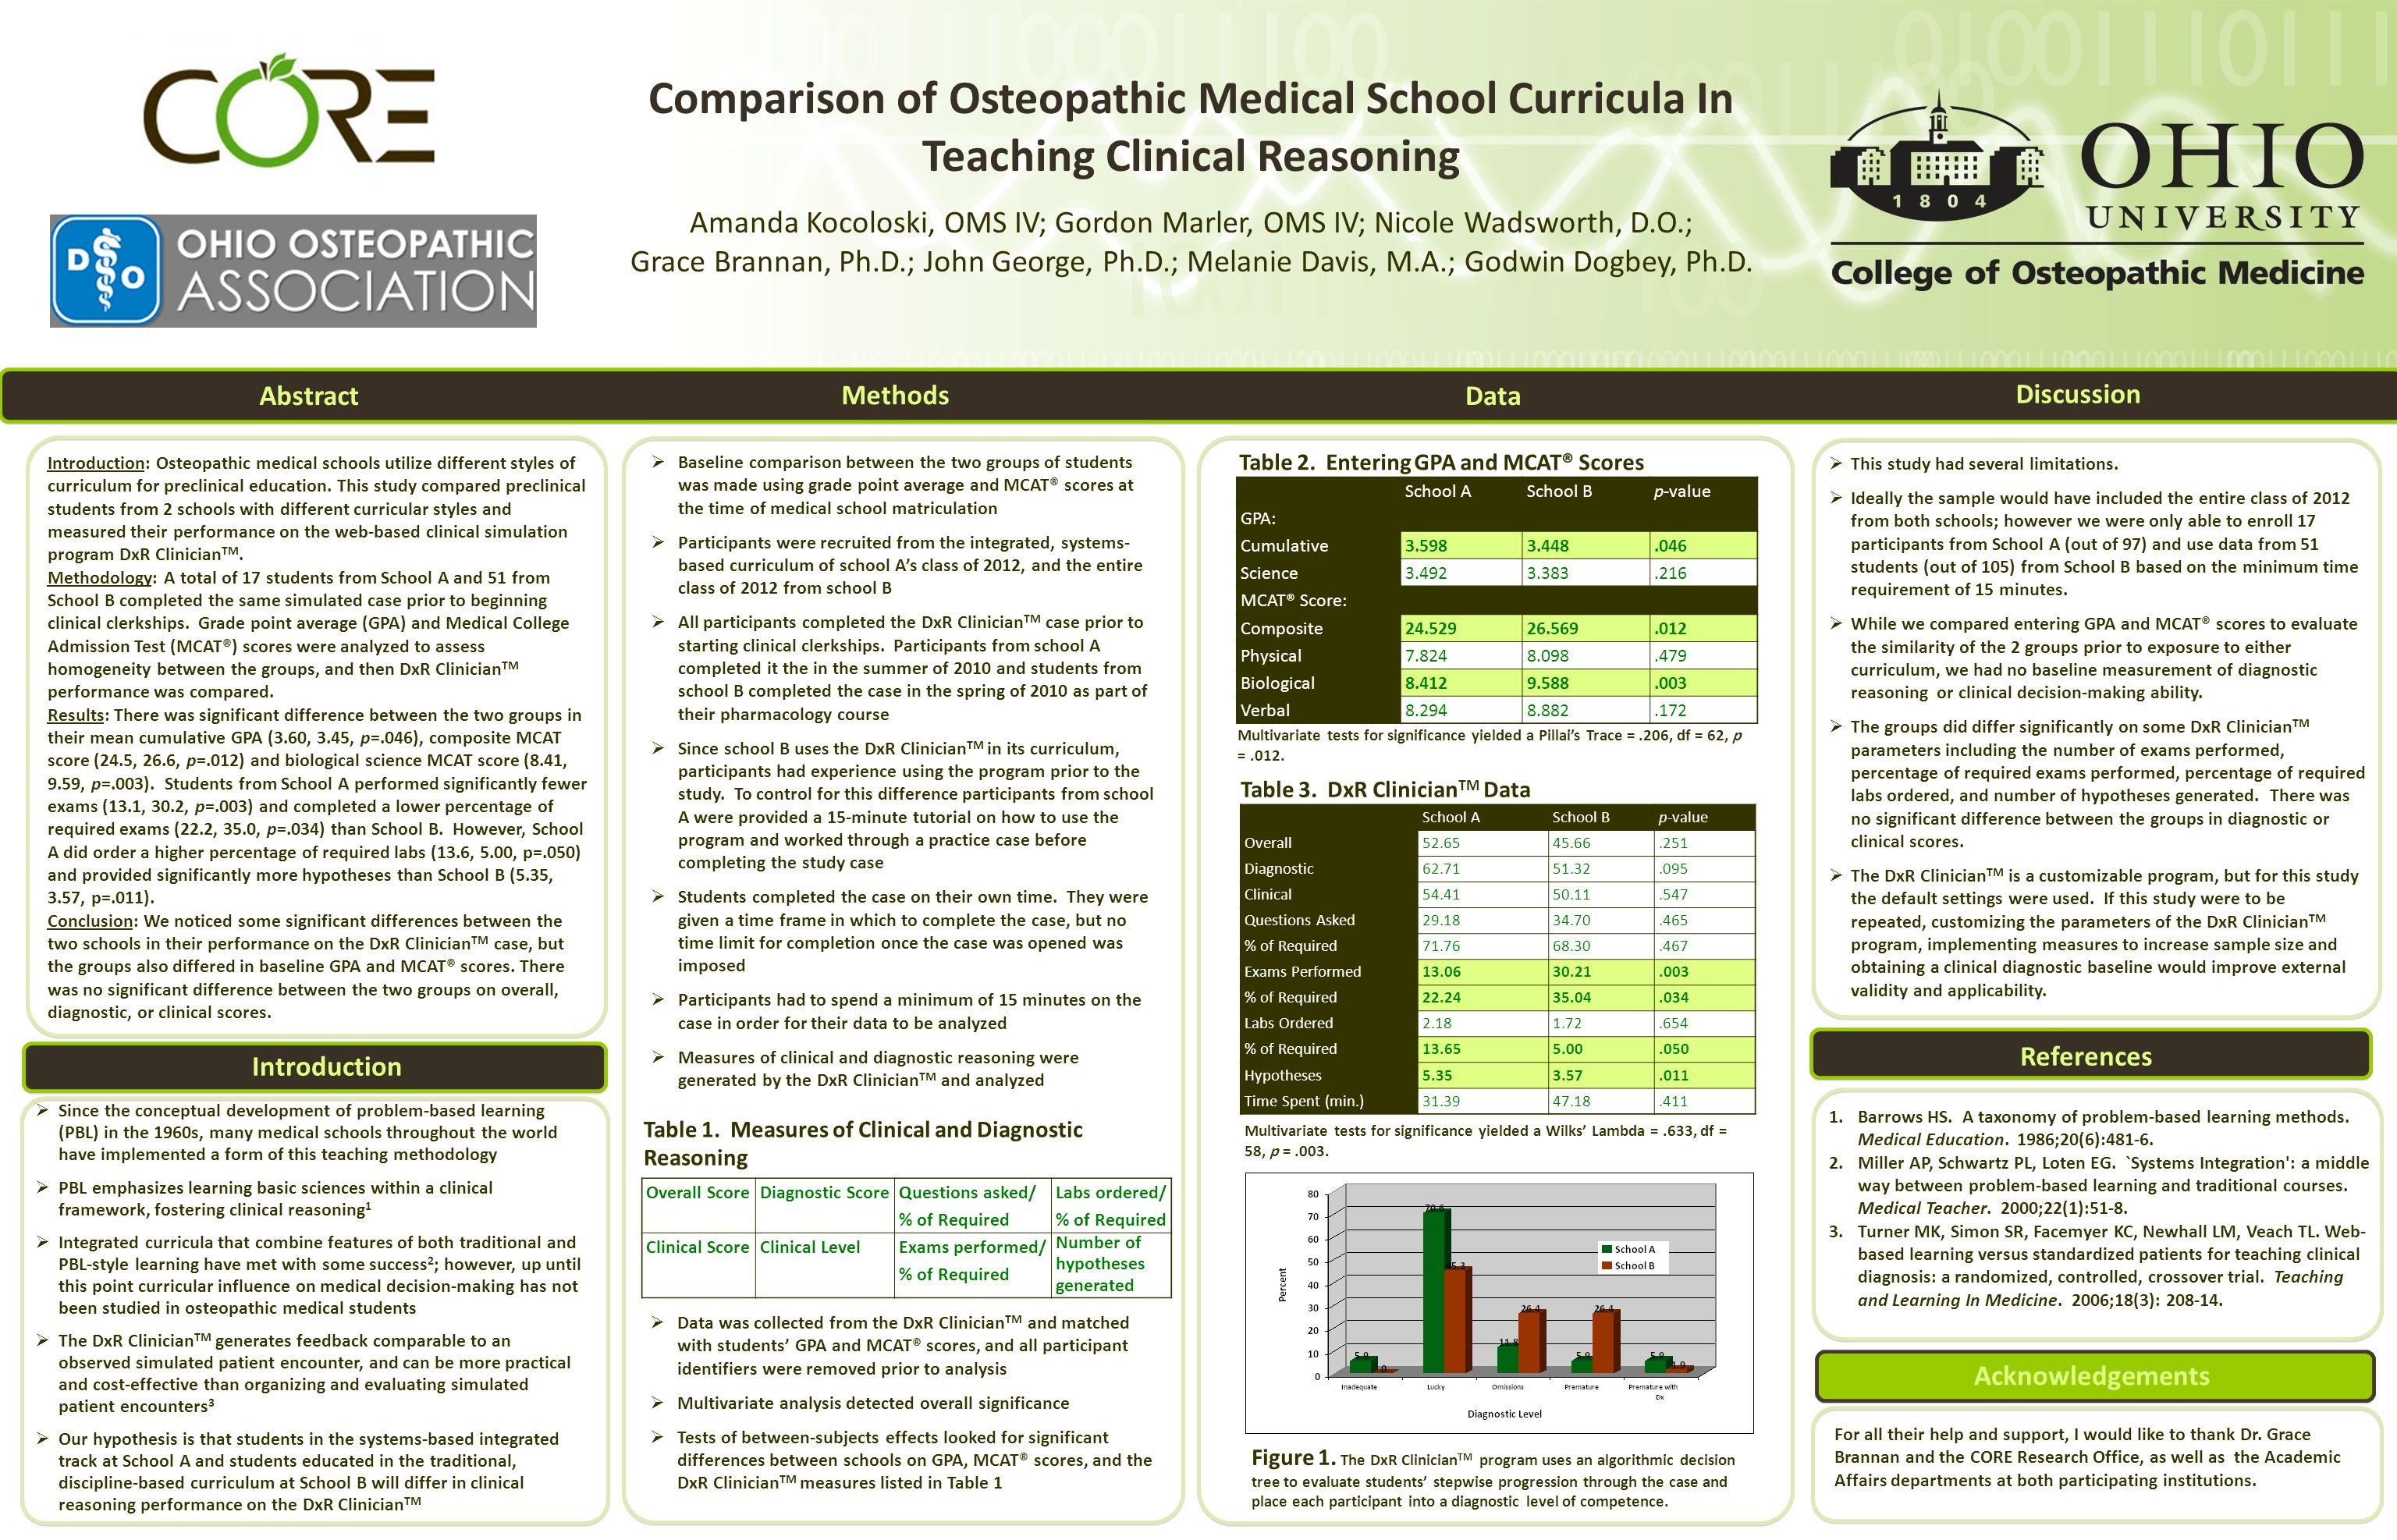 Comparison of Osteopathic Medical School Curricula In Teaching Clinical Reasoning Amanda Kocoloski, OMS IV; Gordon Marler, OMS IV; Nicole Wadsworth, D.O.; Grace Brannan, Ph.D.; John George, Ph.D.; Melanie Davis, M.A.; Godwin Dogbey, Ph.D.